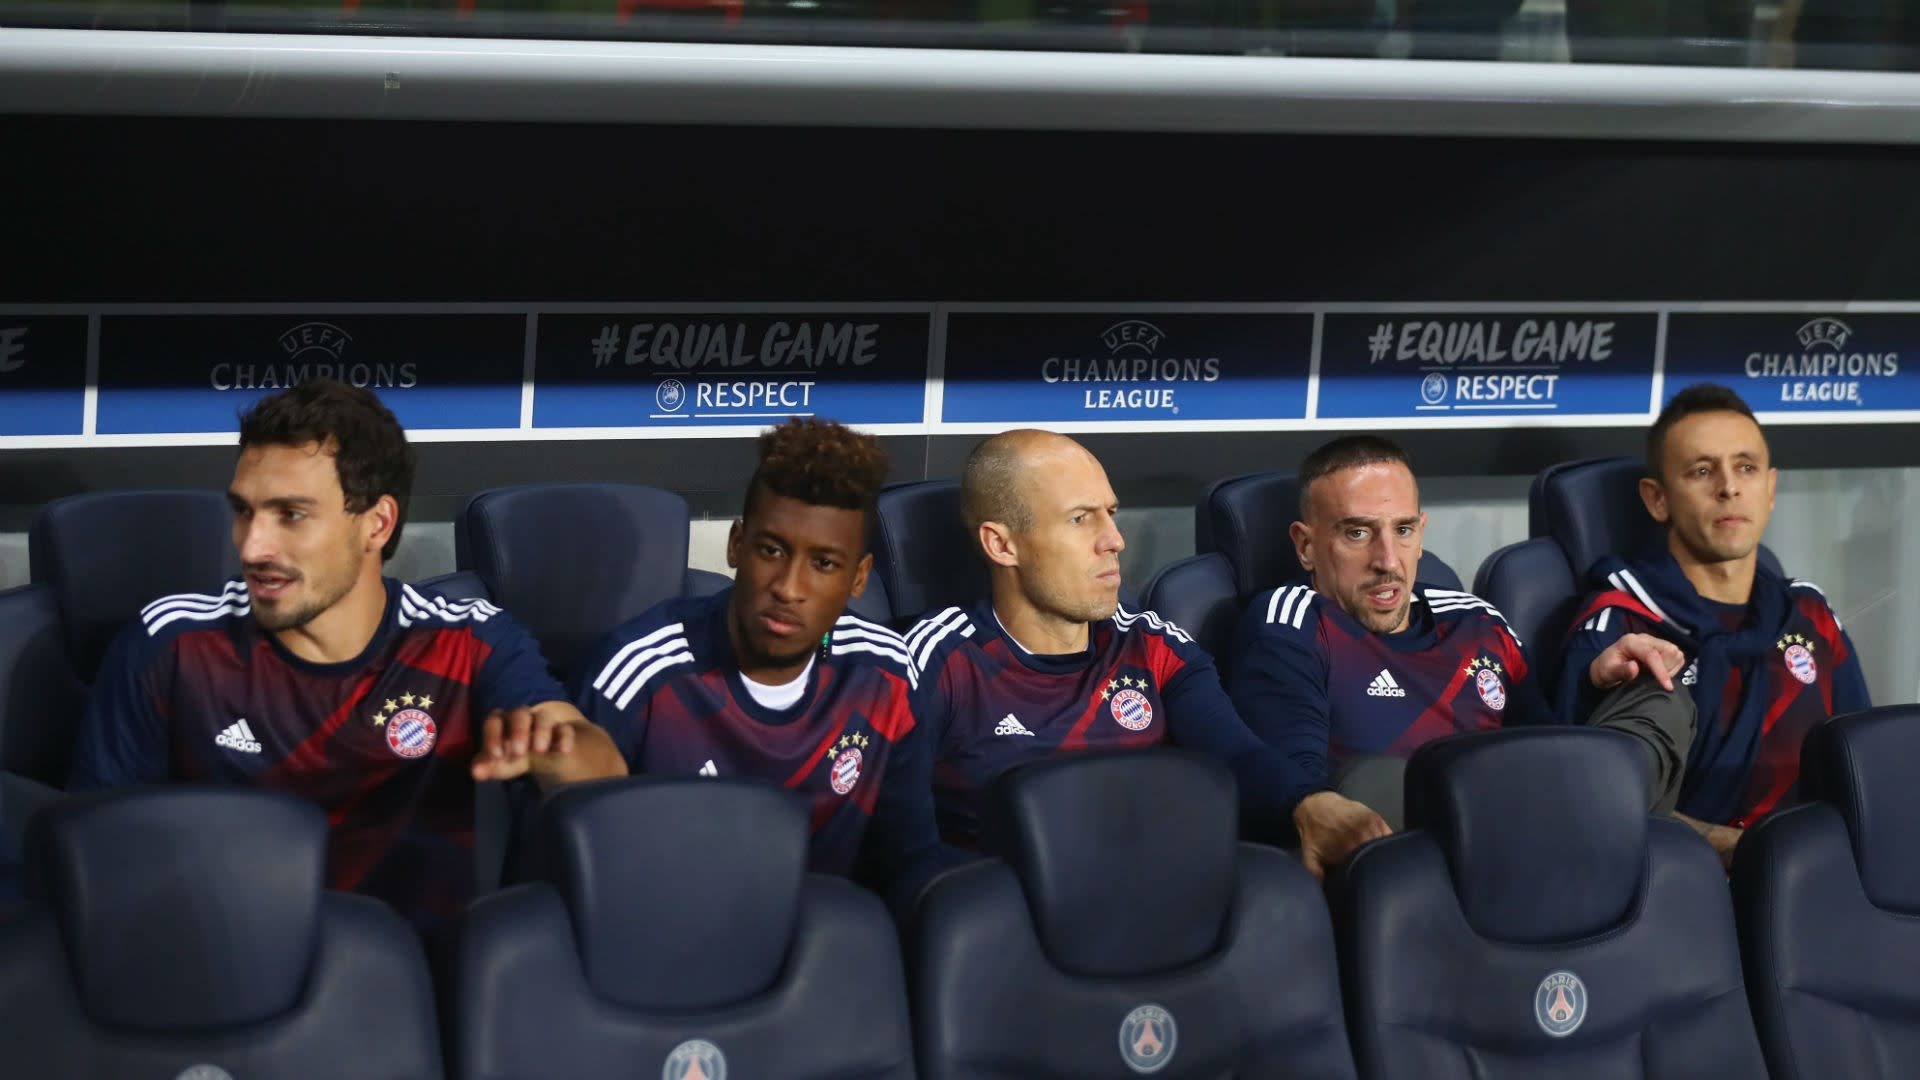 Arjen Robben on the Bayern Munchen bench